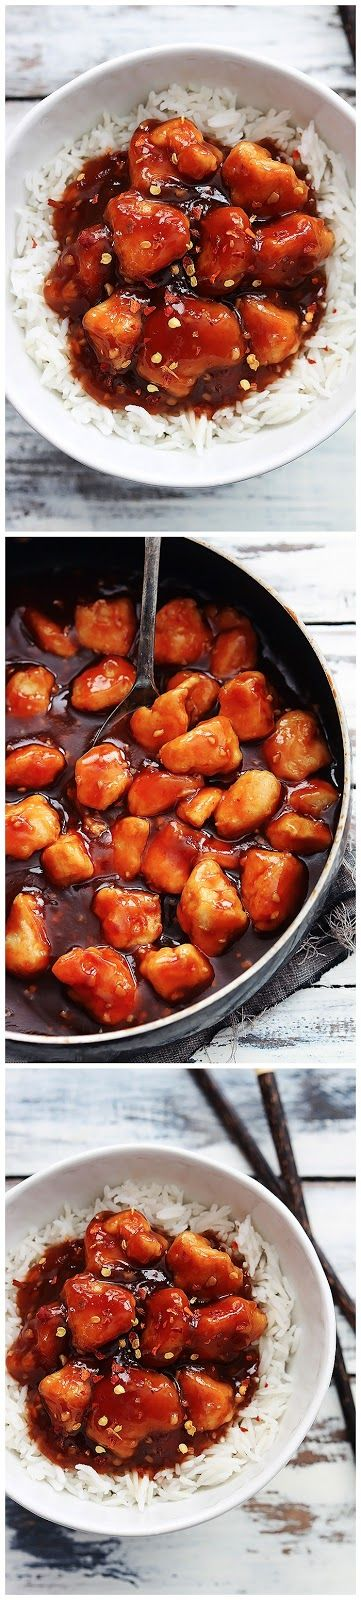 Honey Sriracha Chicken   Ingredients:     3-4 chicken breasts, diced  ⅓ cup cornstarch    sauce     1 cup water  2-3 tablespoons sriracha...